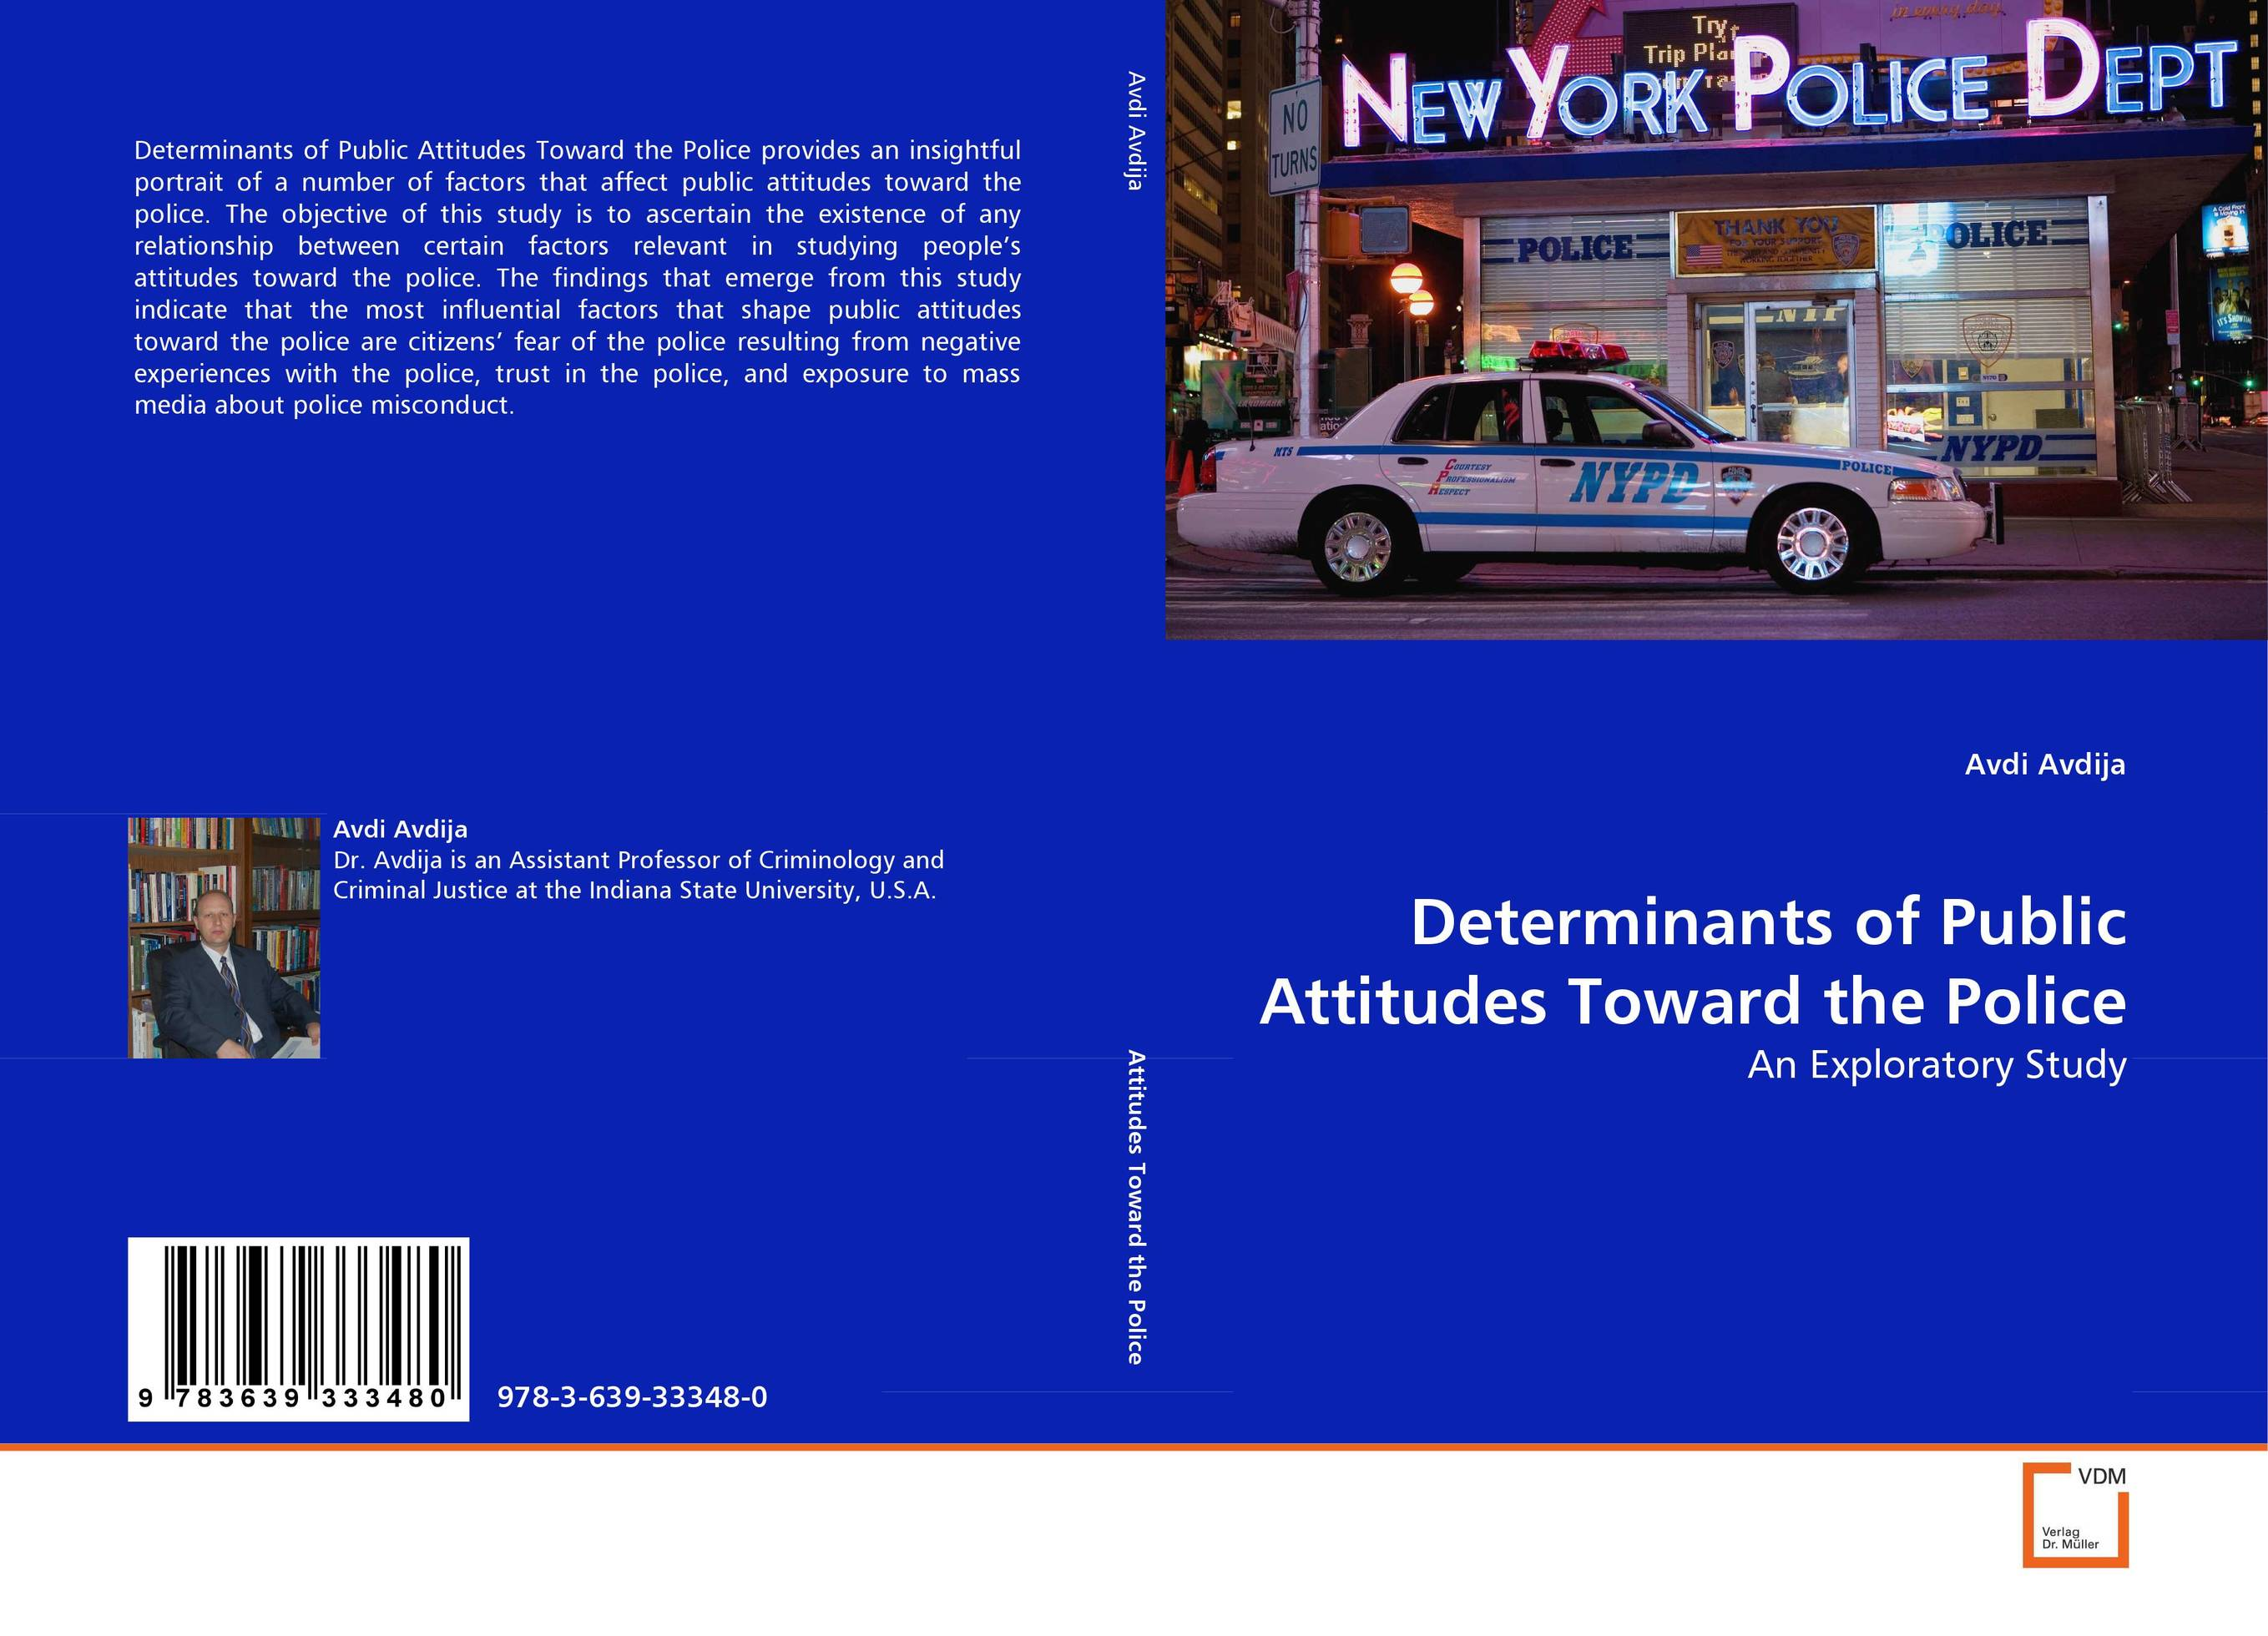 understanding the negative attitude of the public towards police Are likely to have more negative attitudes toward the police the police subculture view of citizens is that: the public was against the police or hated the police.